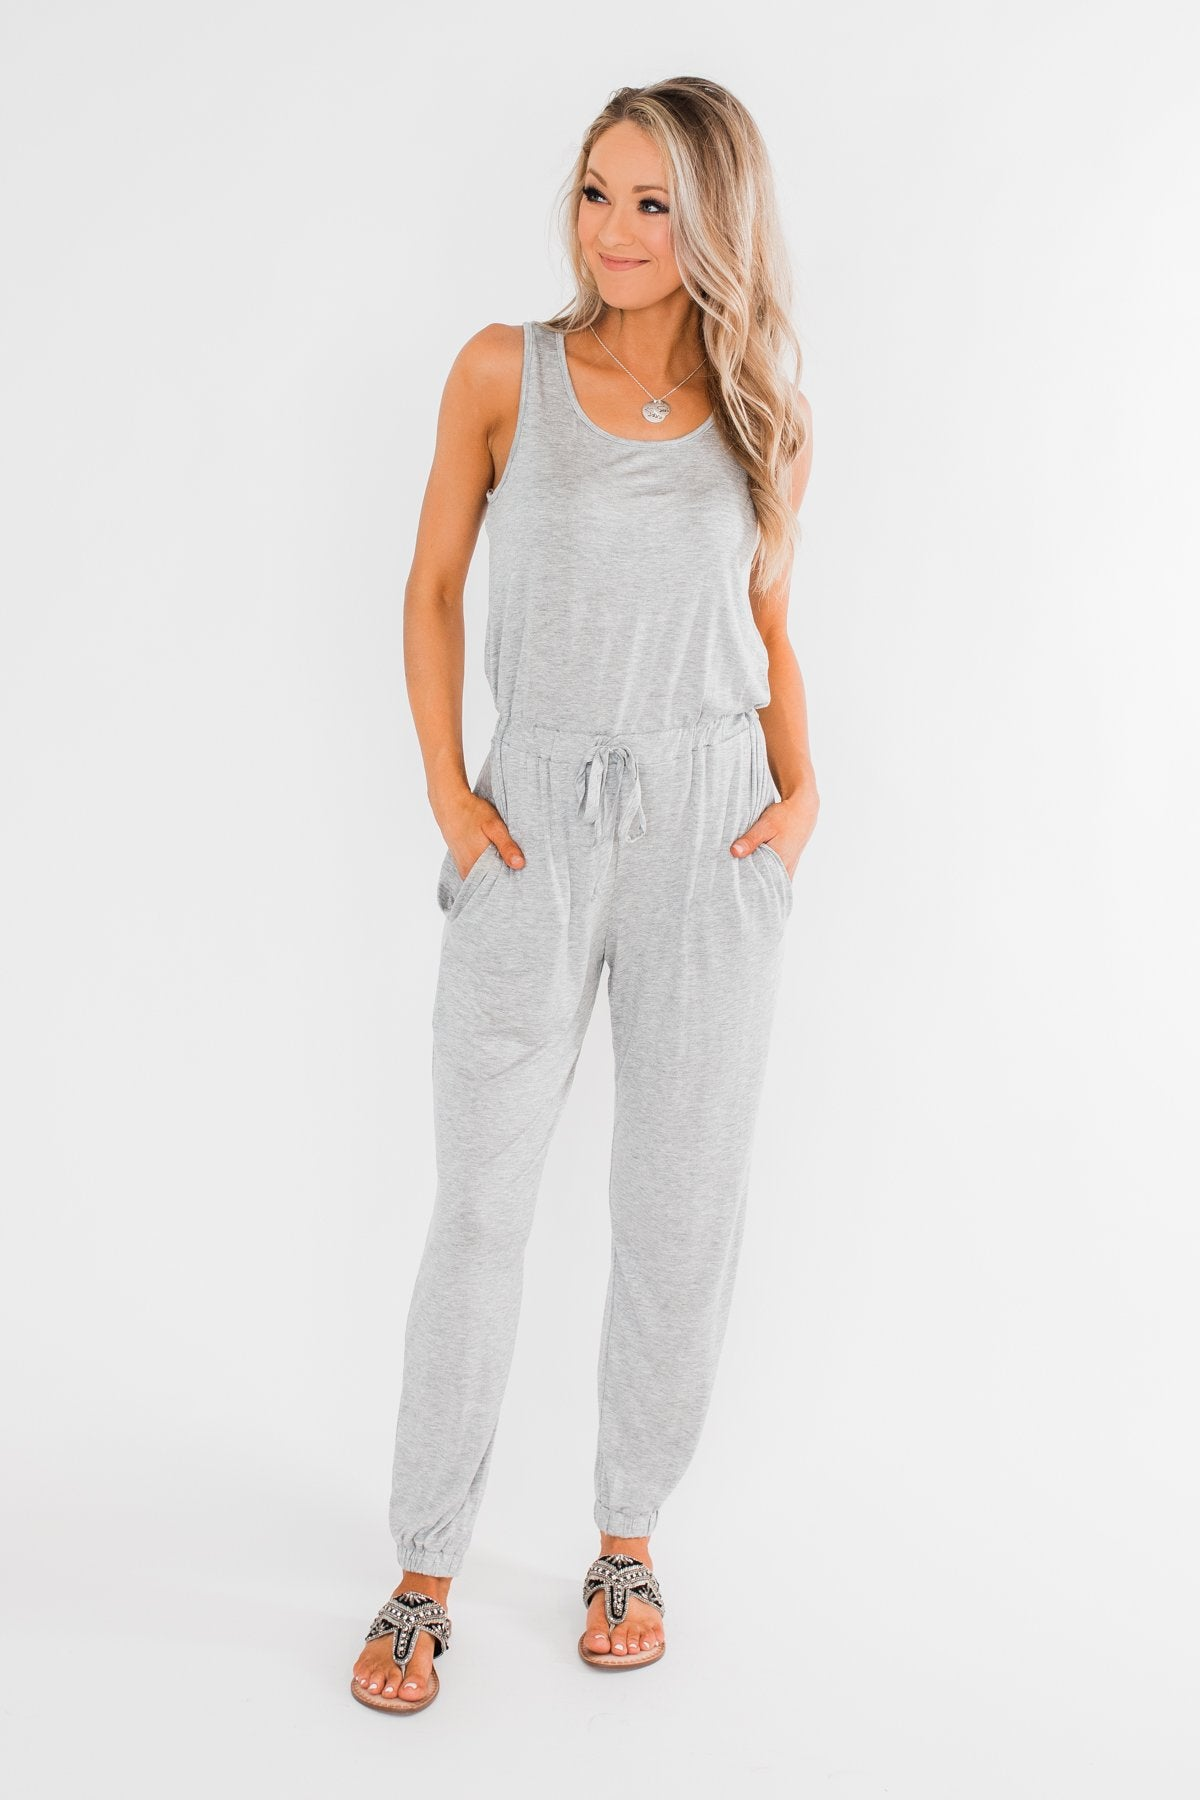 Day To Day Sleeveless Jumpsuit- Heather Grey